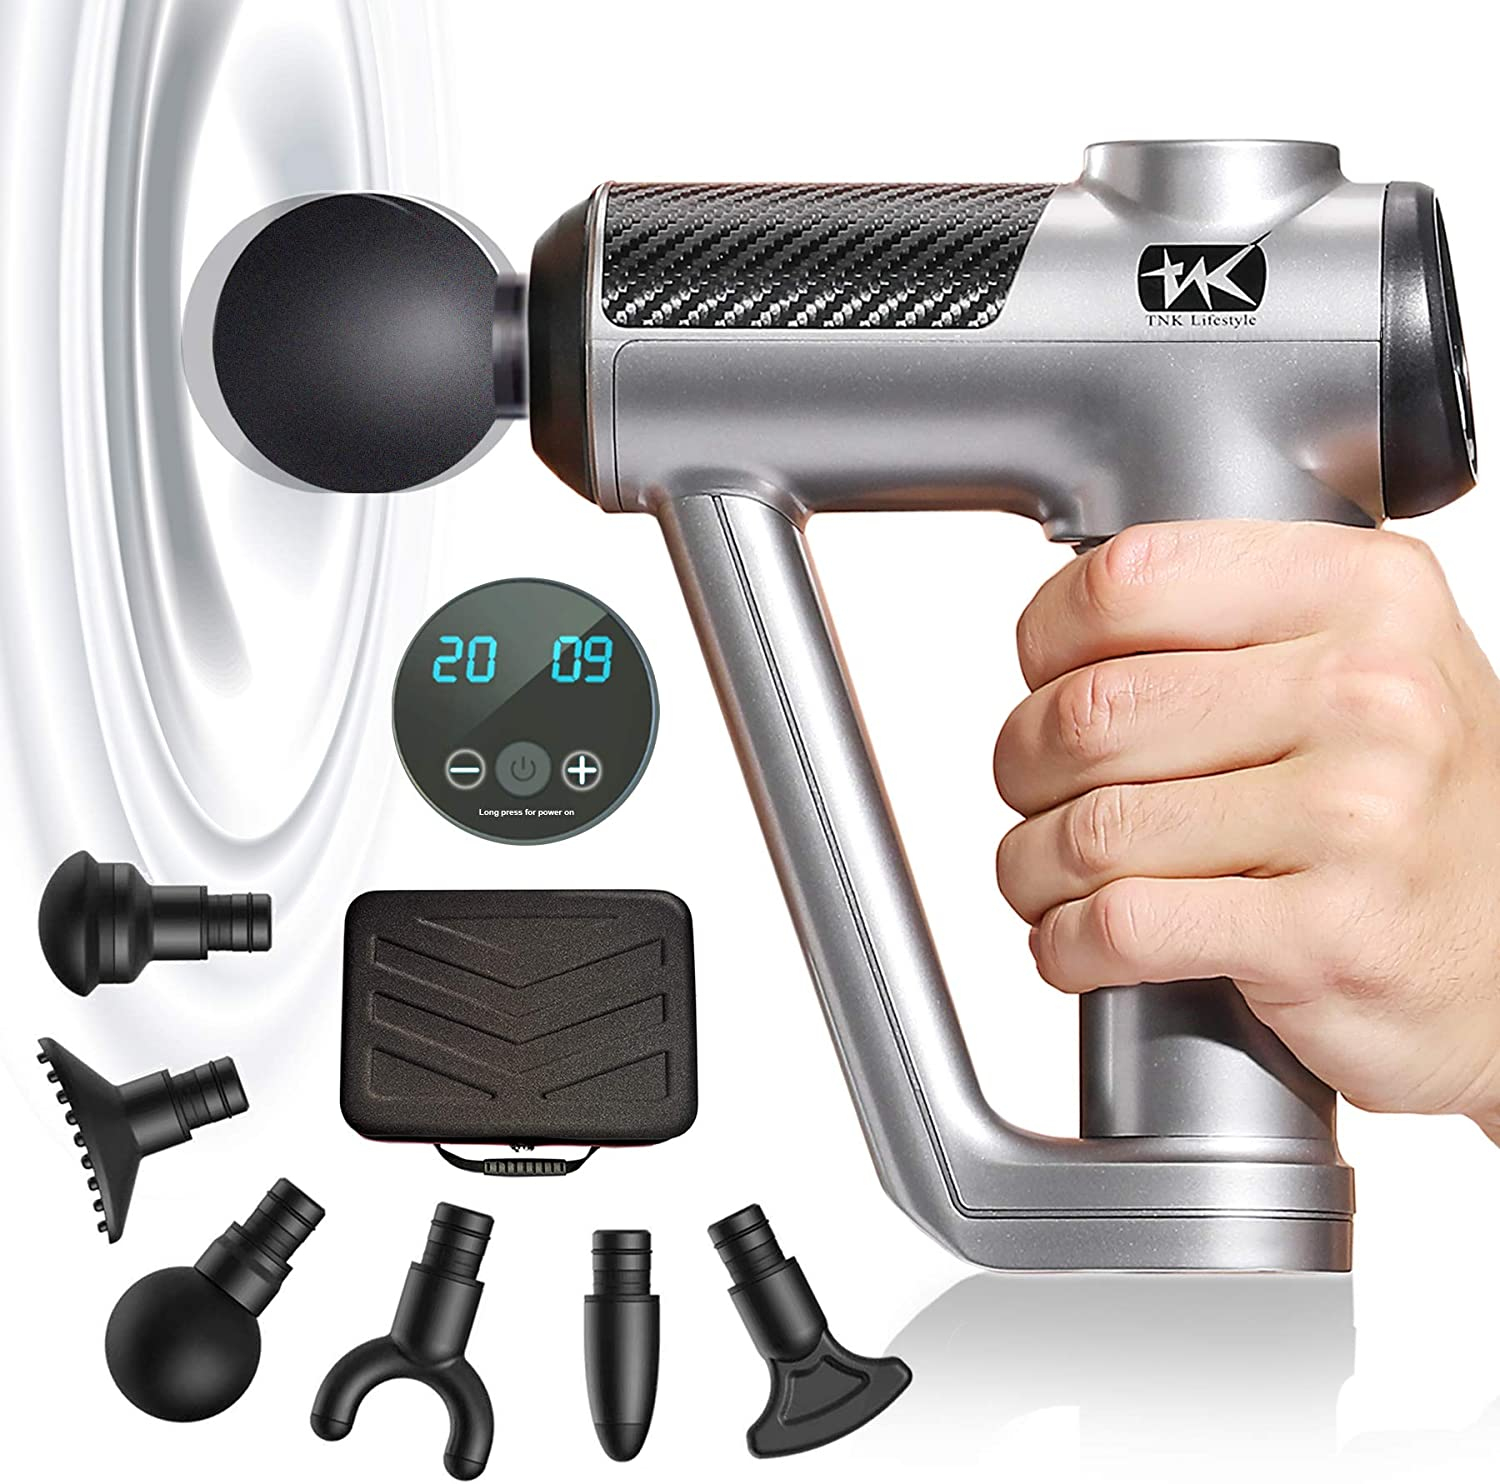 TNK Massage Gun- Upgraded Tissue Professional- Deep Manufacturer regenerated product Discount is also underway Percussion